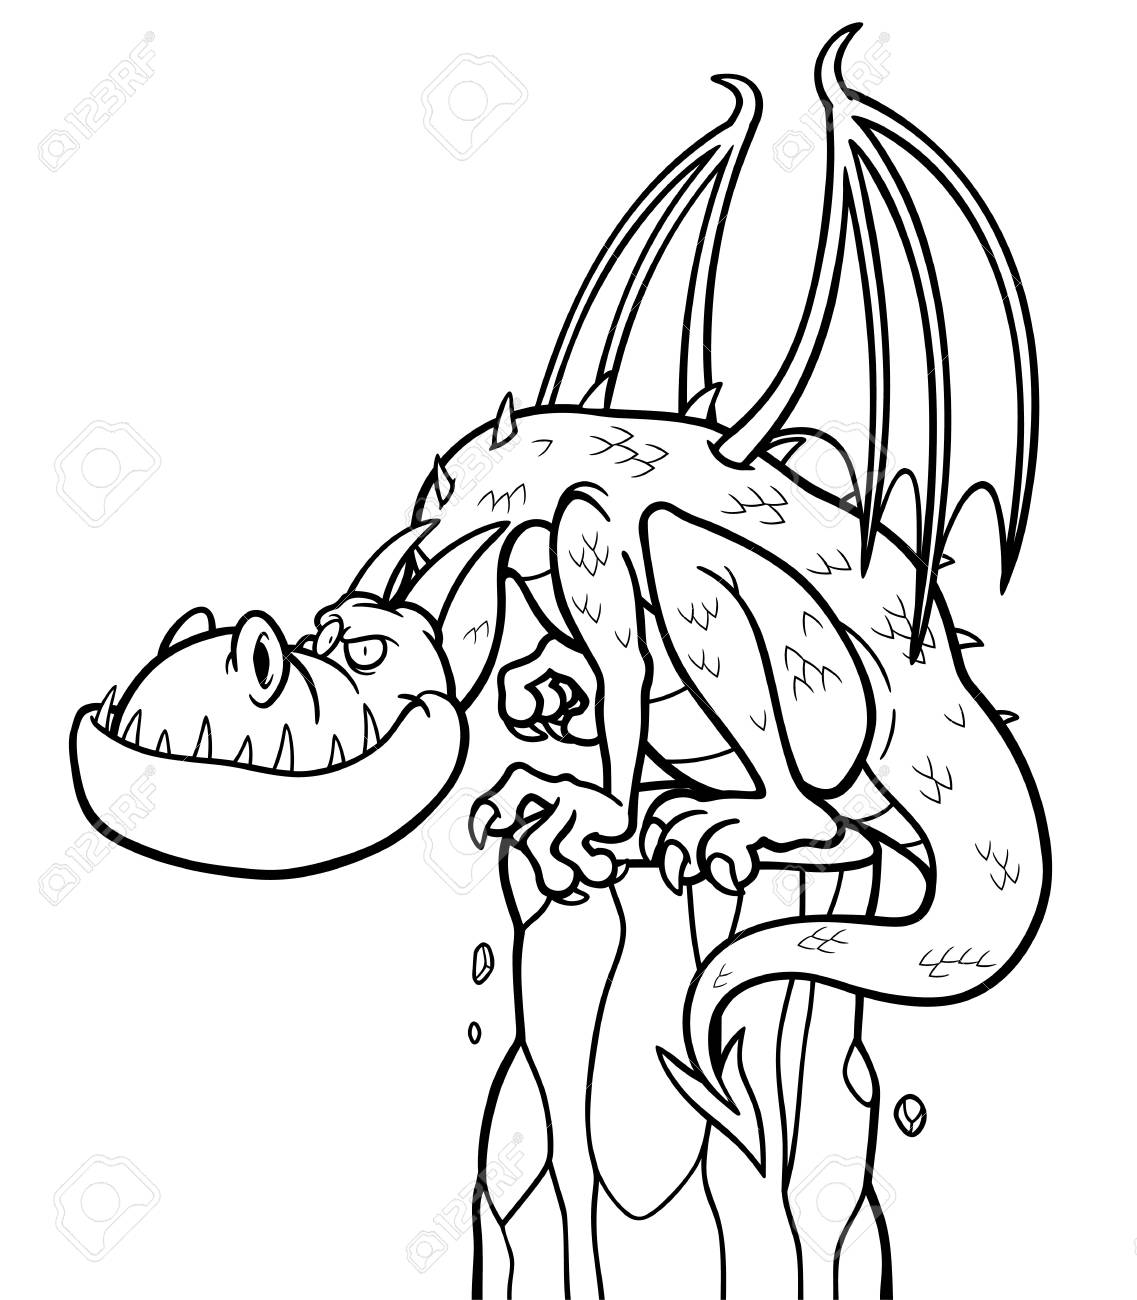 Illustration Of Cartoon Dragon - Coloring Book Royalty Free Cliparts ...